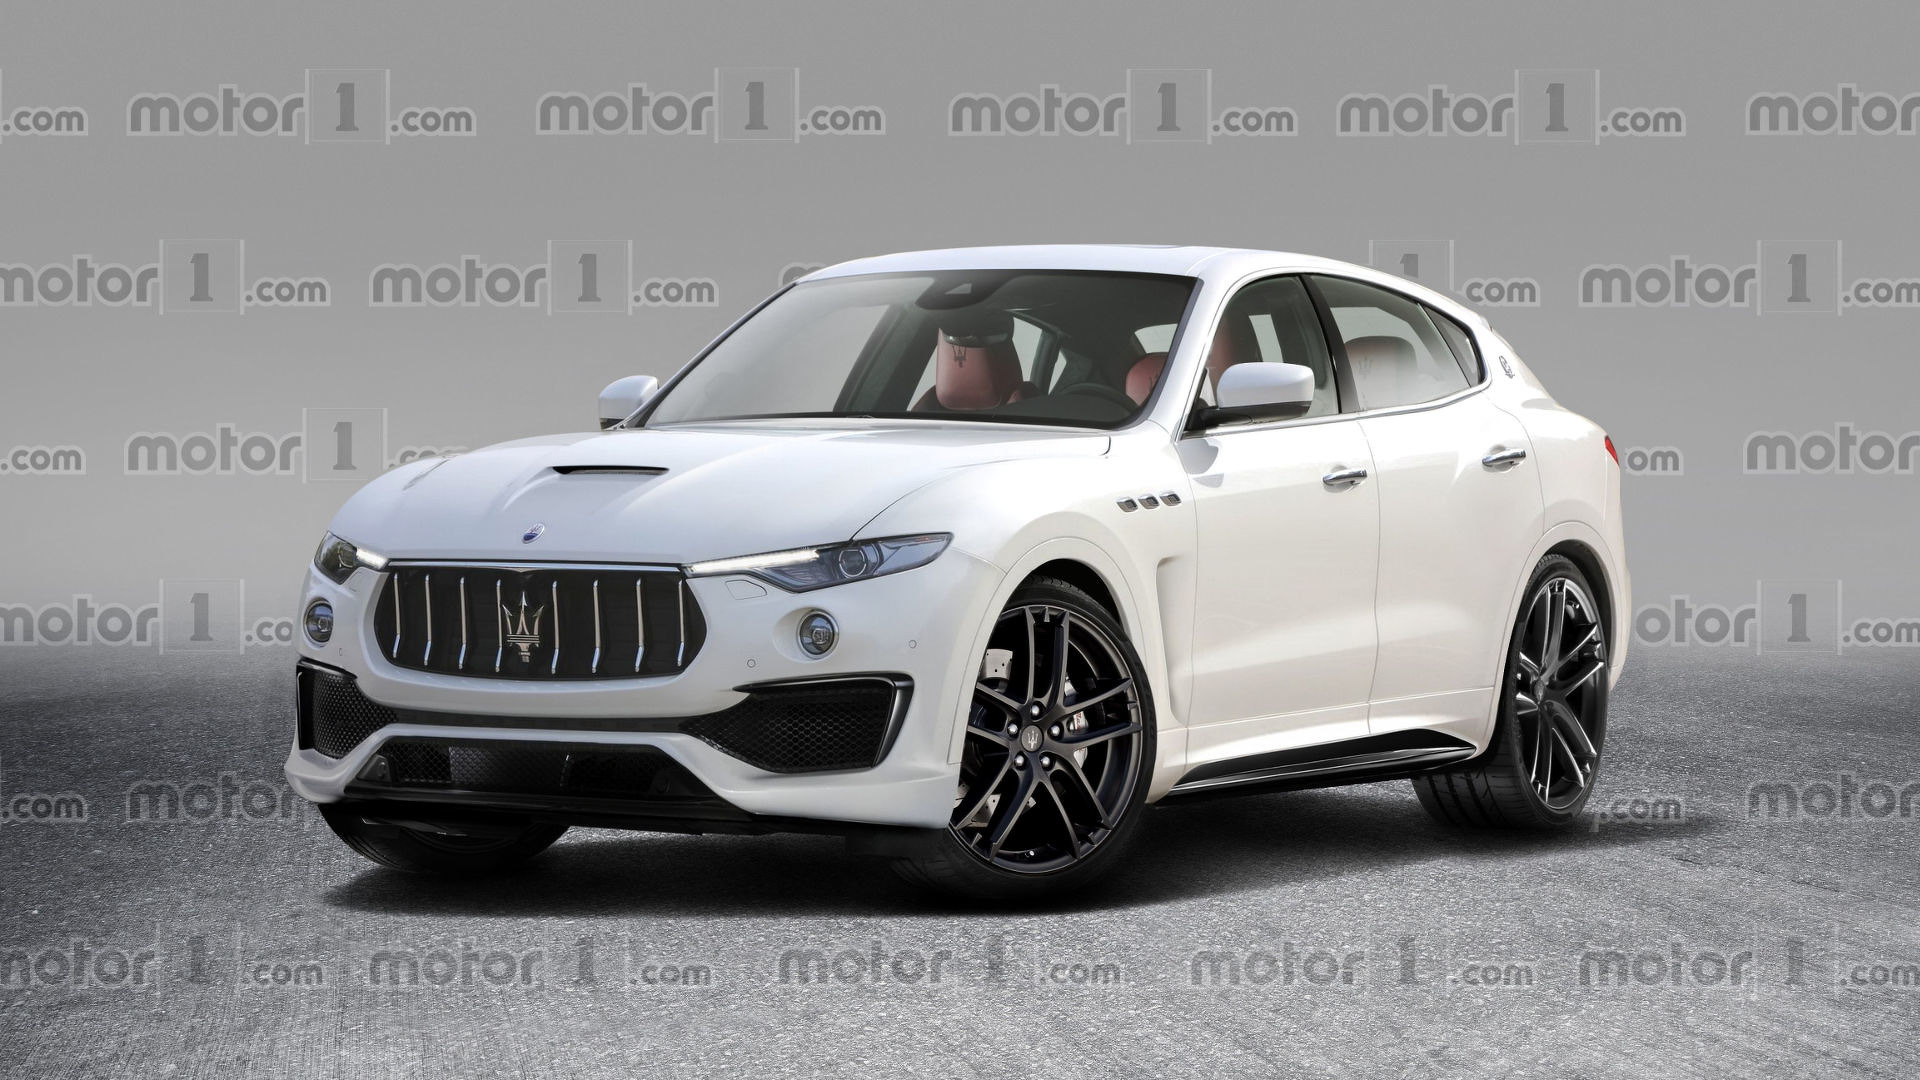 Maserati Levante Gts Render Is The Suv Ferrari Won T Do